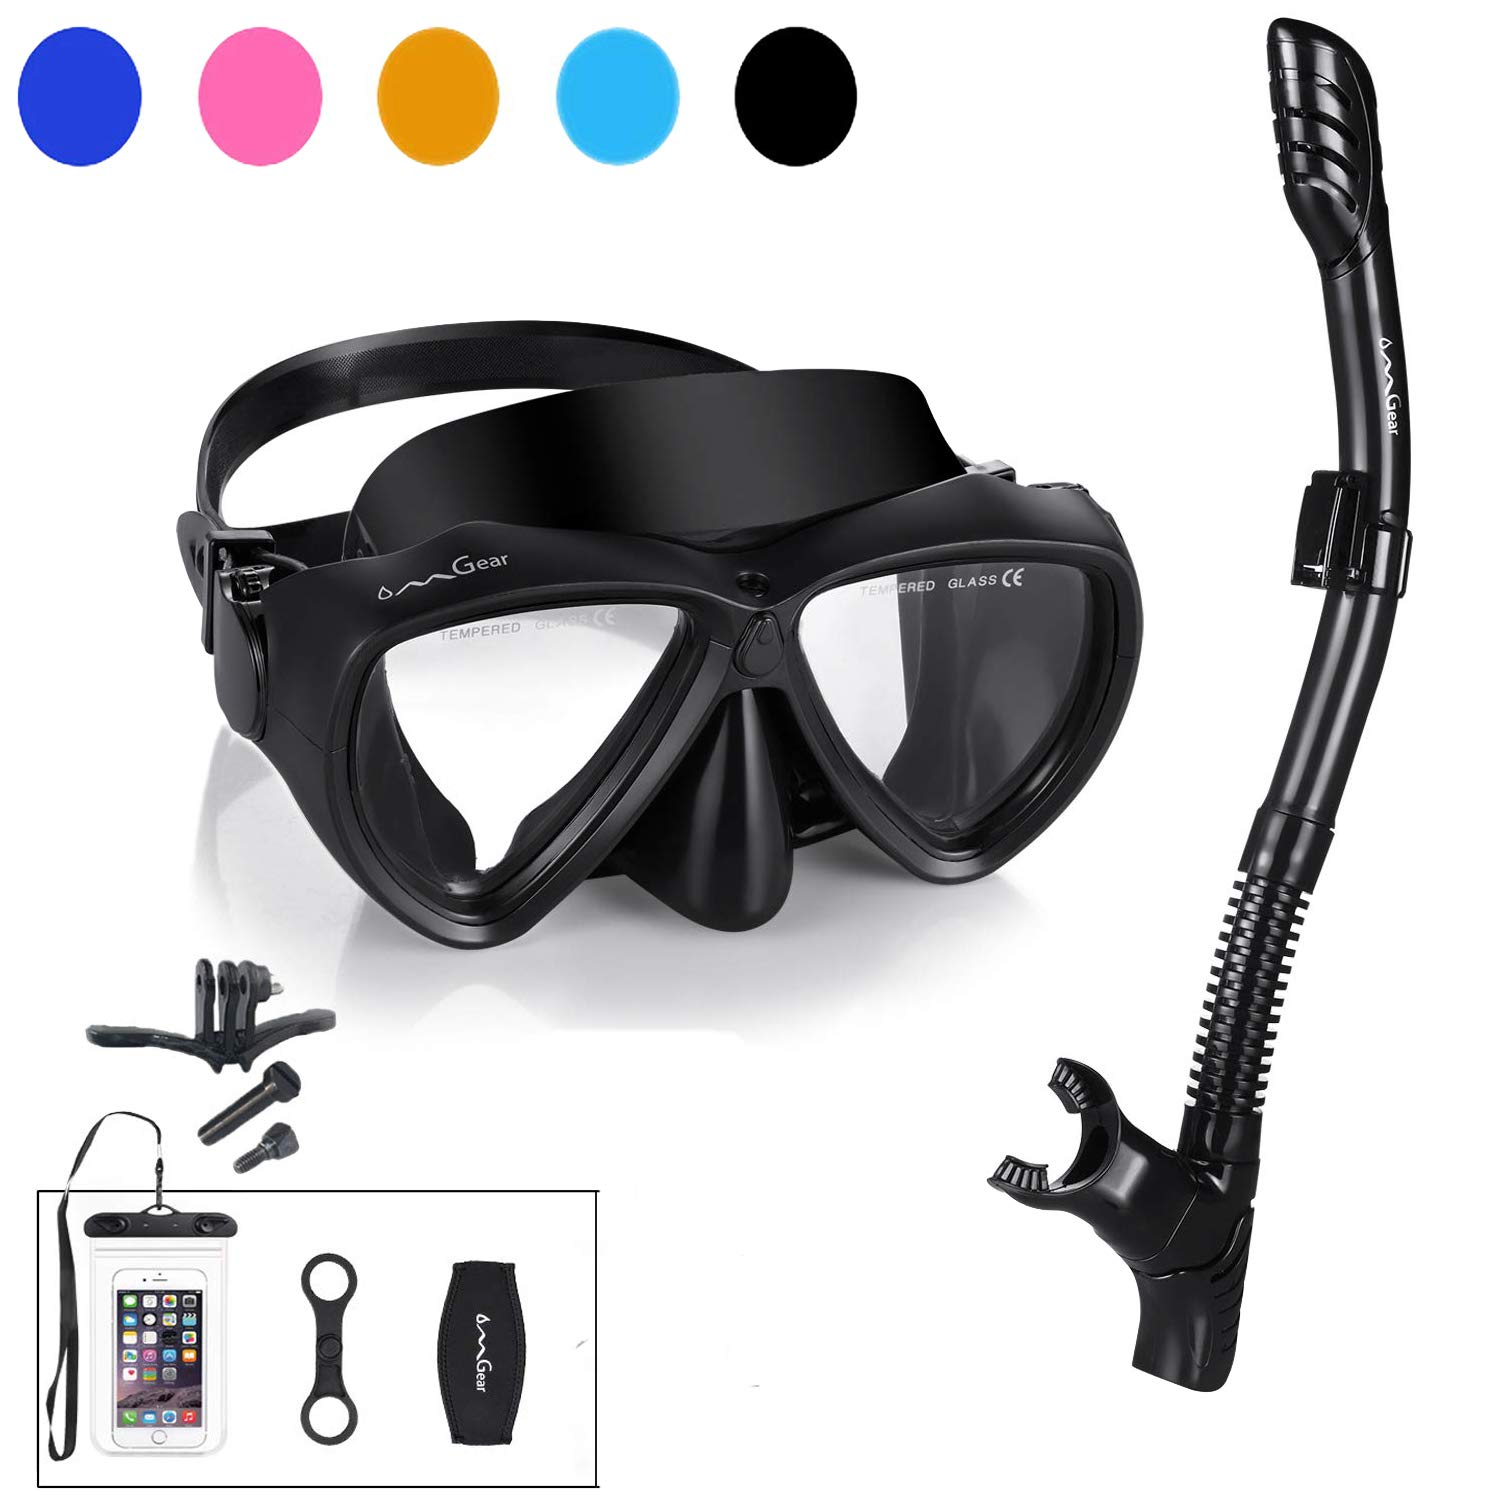 Snorkel Set Snorkeling Gear Package Diving Set Premium Silicone Dive Mask Snorkel Equipment Goggles Anti-fog Anti-leak Neoprene Mask Strap Scuba Diving Freediving Spearfishing Swimming (black-camera ) by OMGear